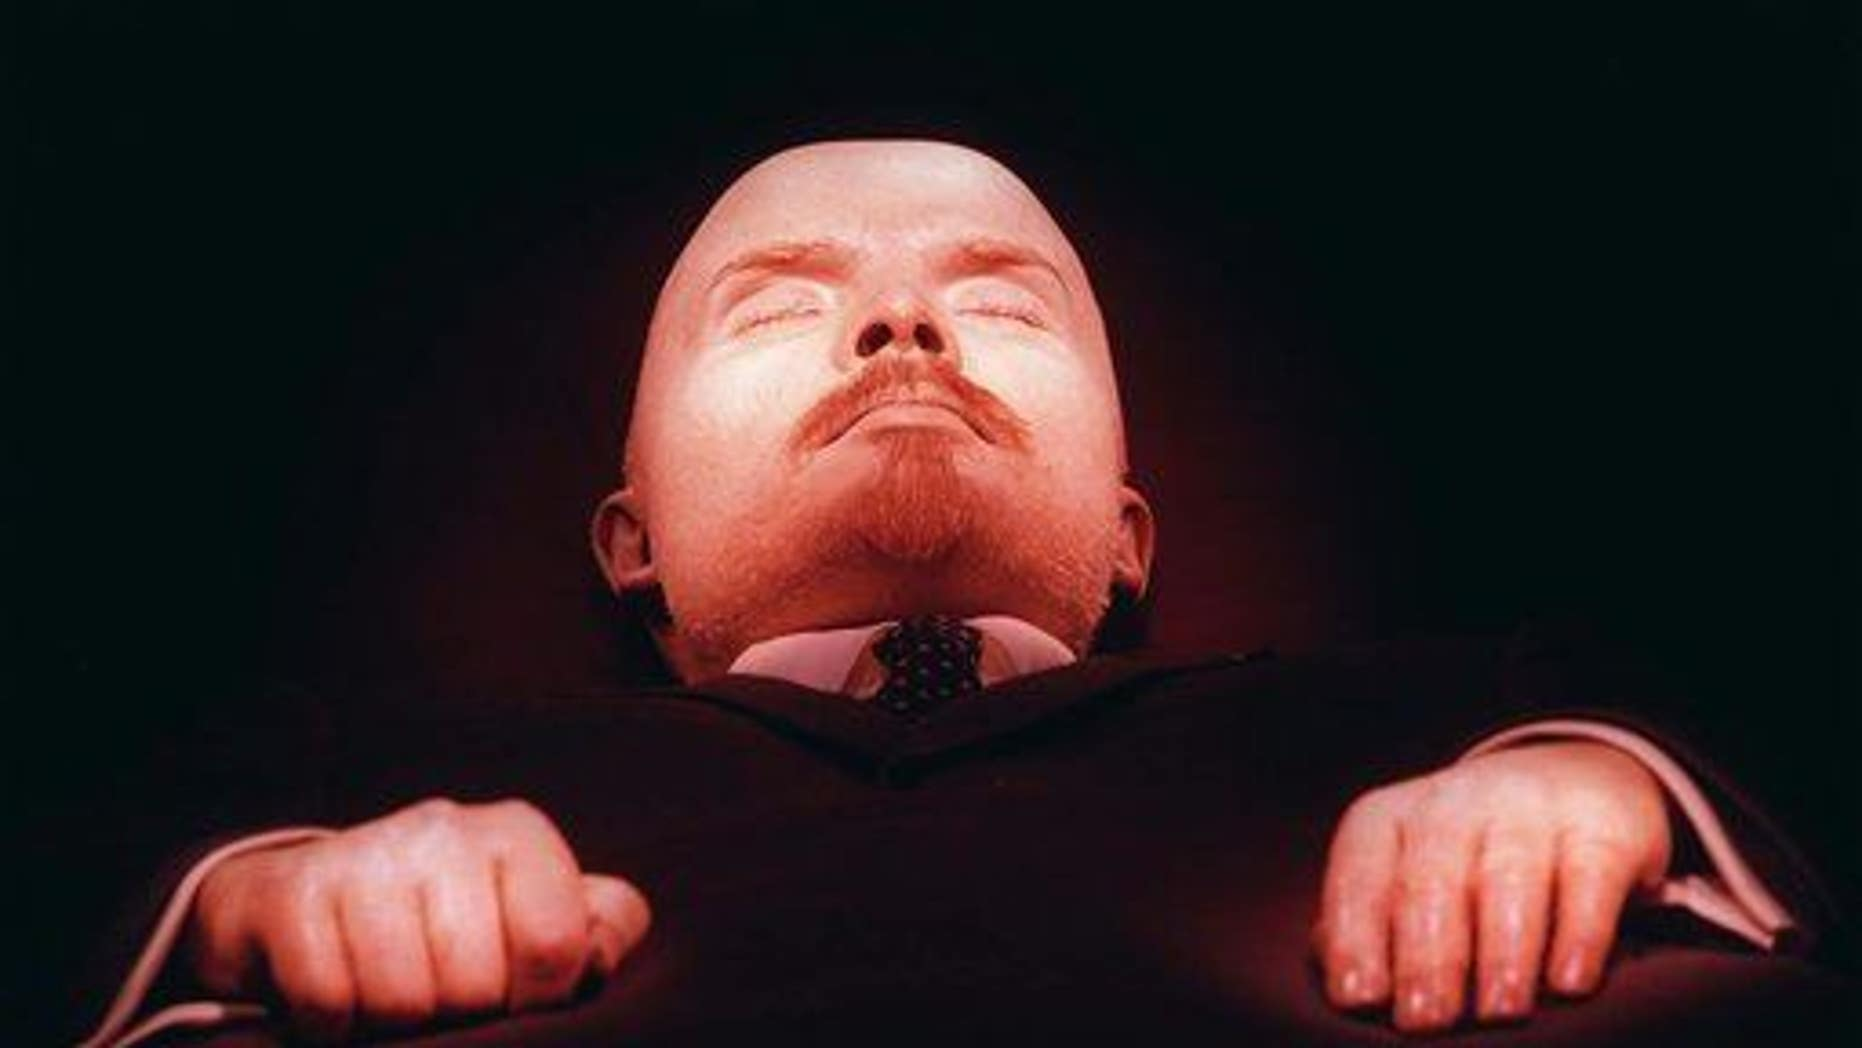 In this April 16, 1997 file photo, the embalmed body of Vladimir Lenin, founder of the Soviet Union, is on display in his tomb on Moscow's Red Square.